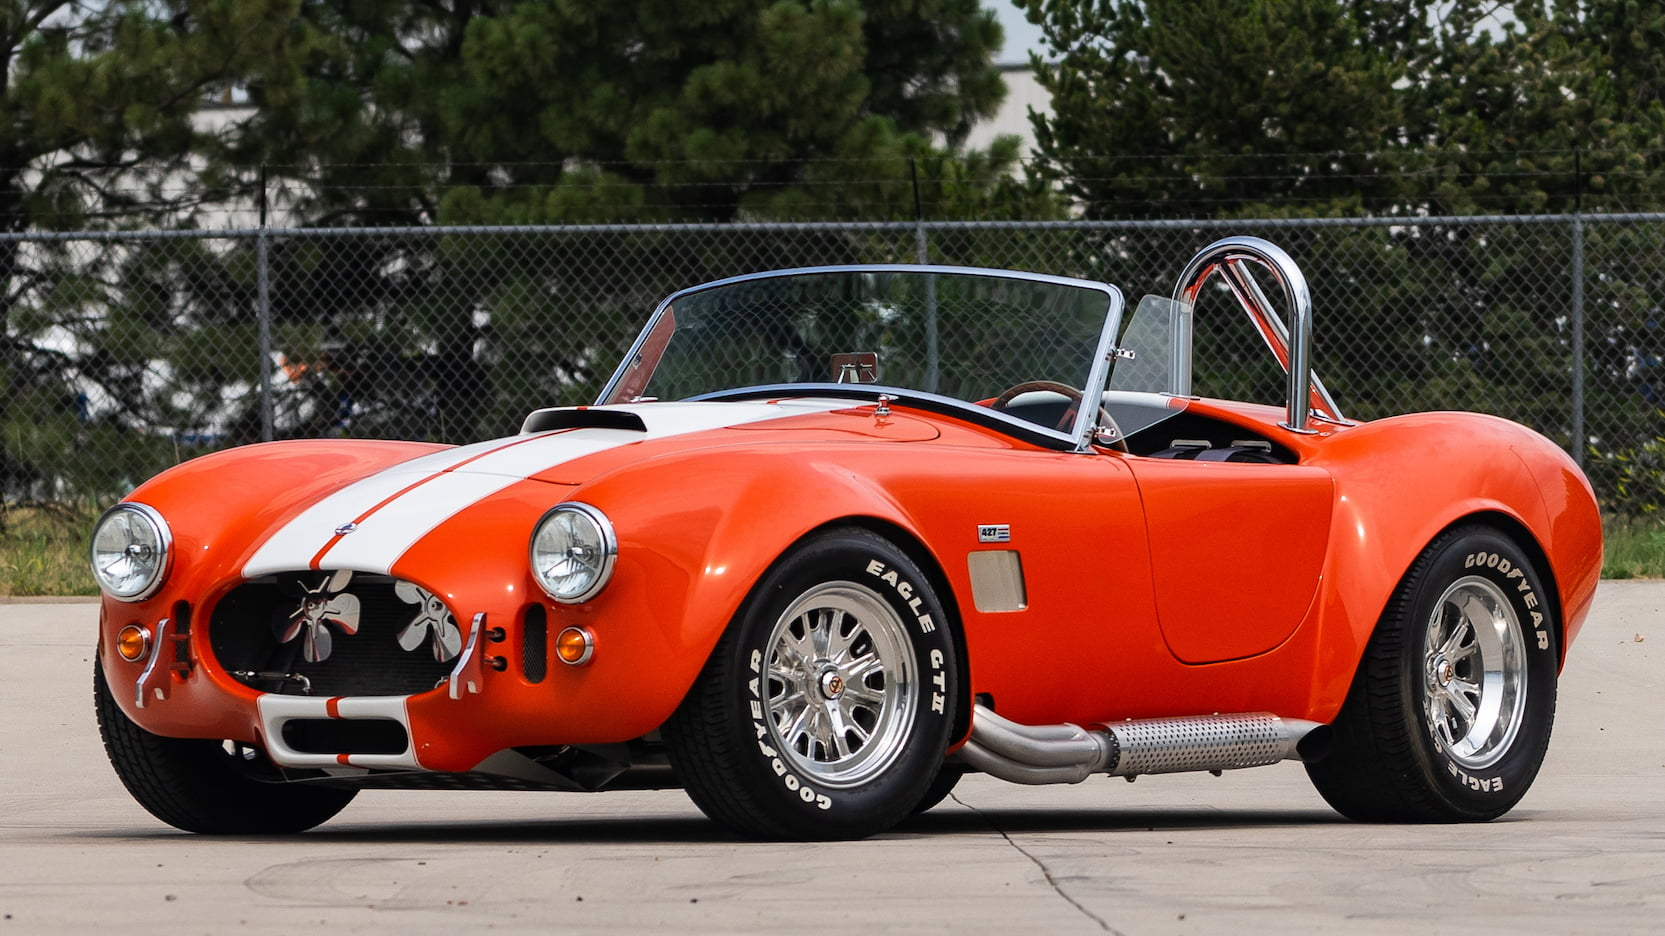 1965 shelby cobra replica front 3/4